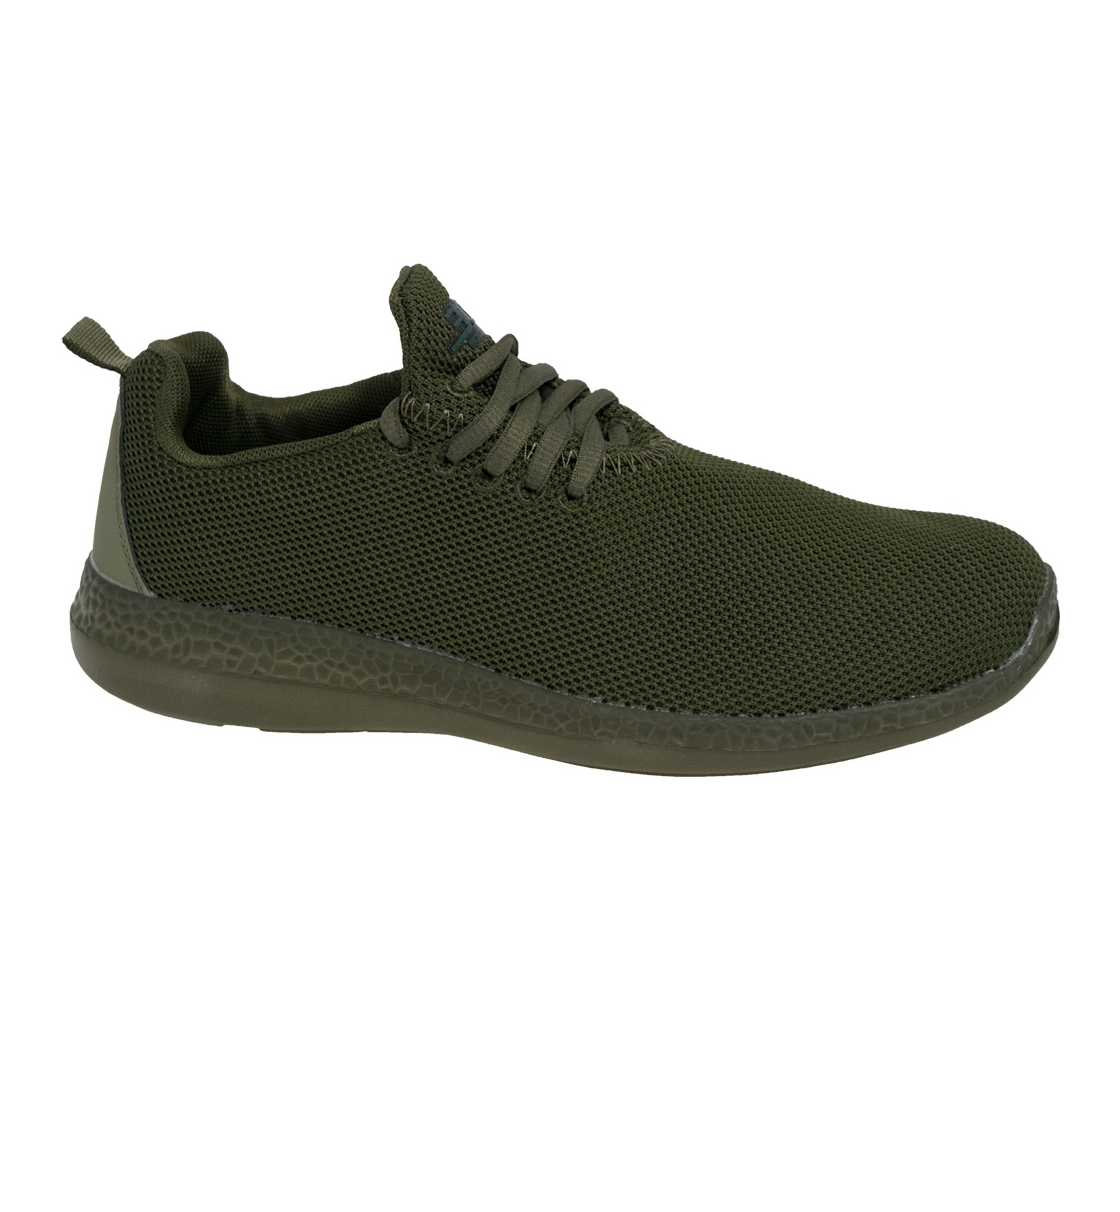 Body Action Ανδρικό Παπούτσι Μόδας Sports Shoes 093709